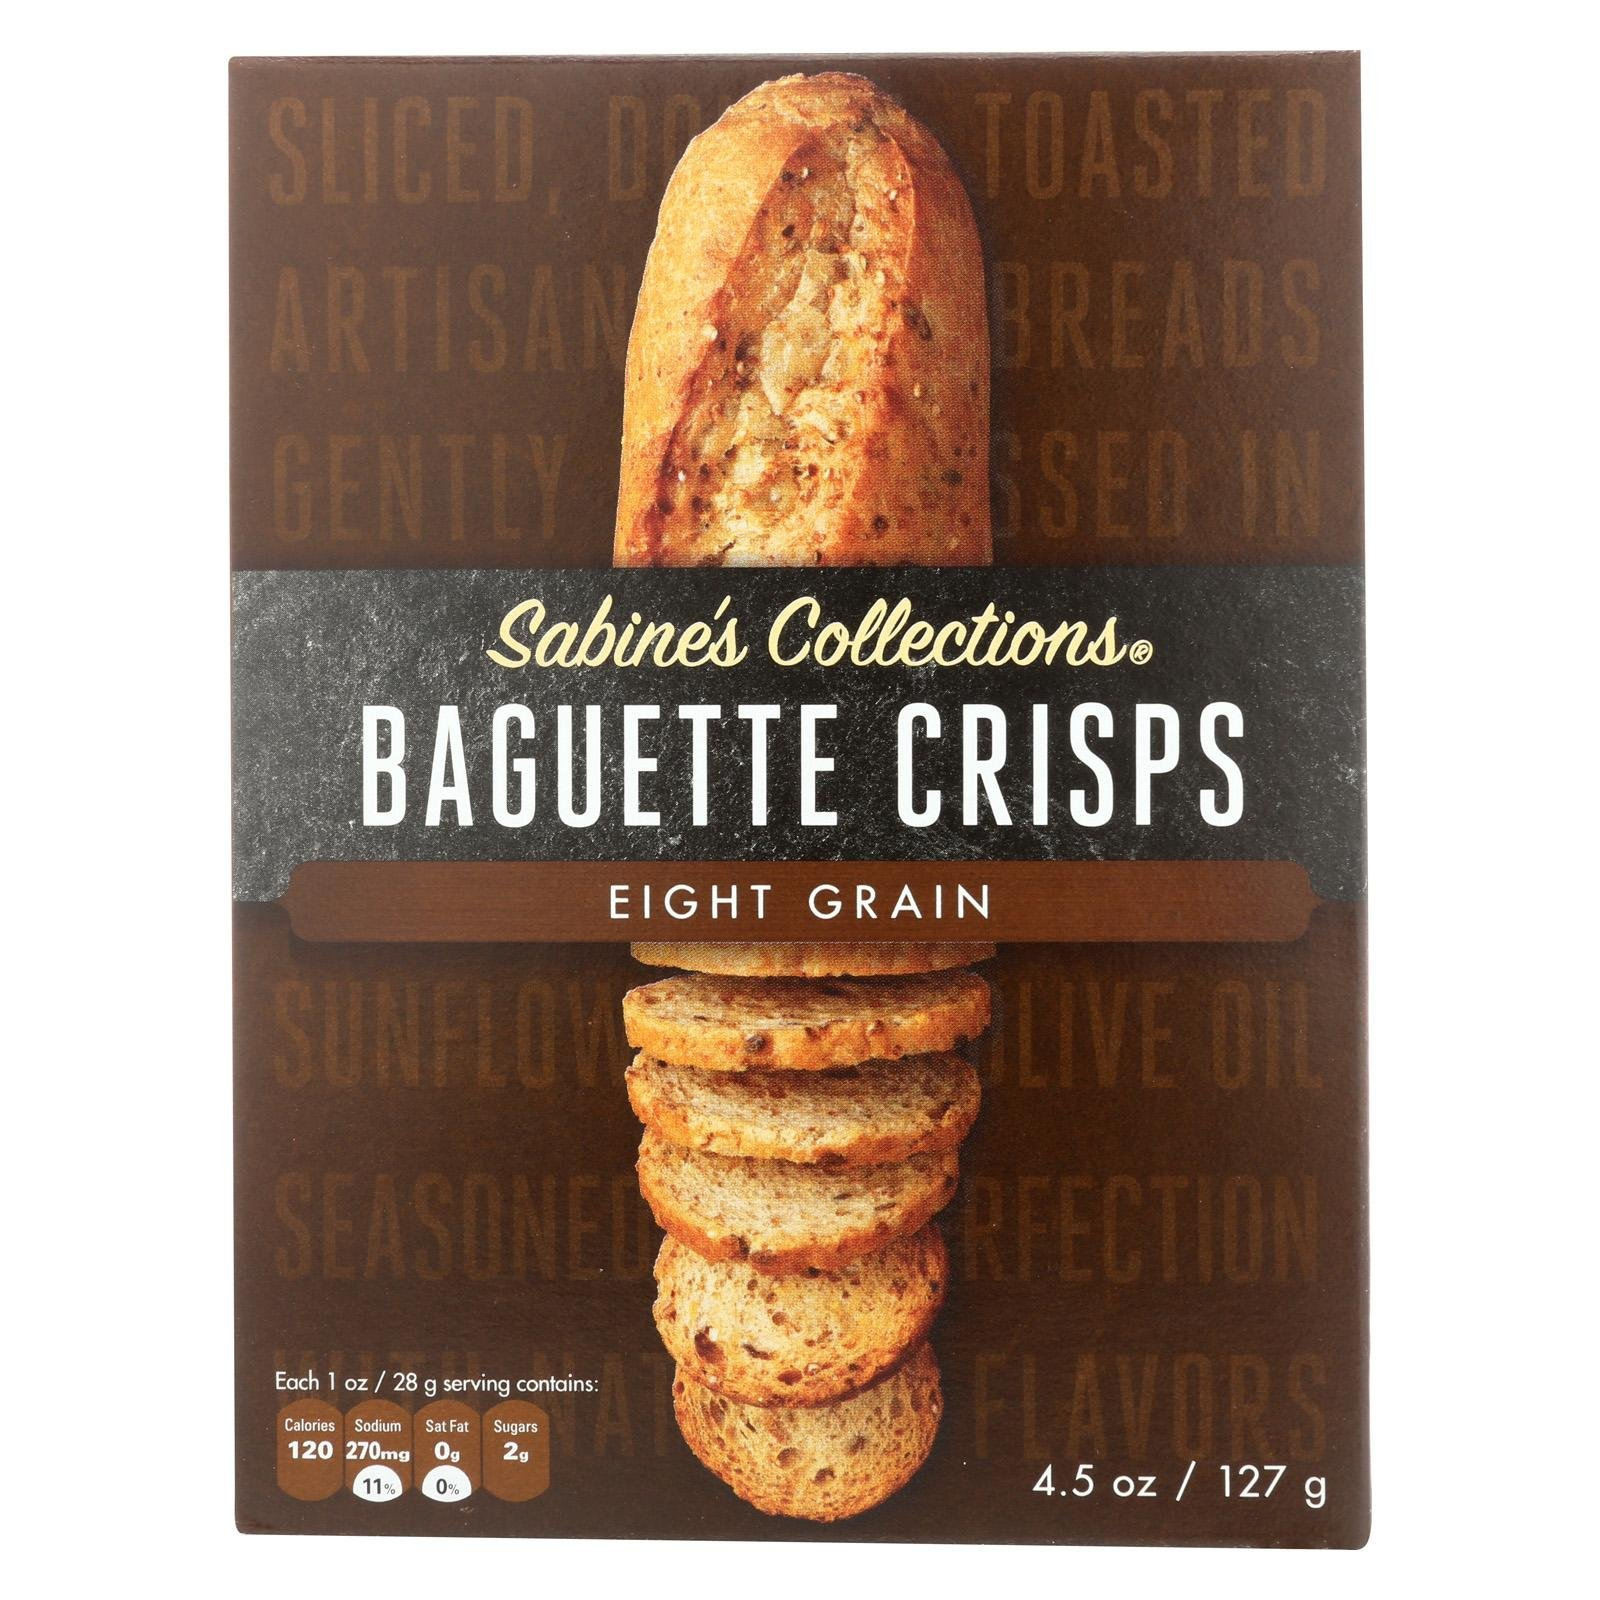 Sabine's Collections Baguette Bread Crisps Eight Grain Certified Kosher 4.5 oz - 12 pack by Sabine (Image #1)